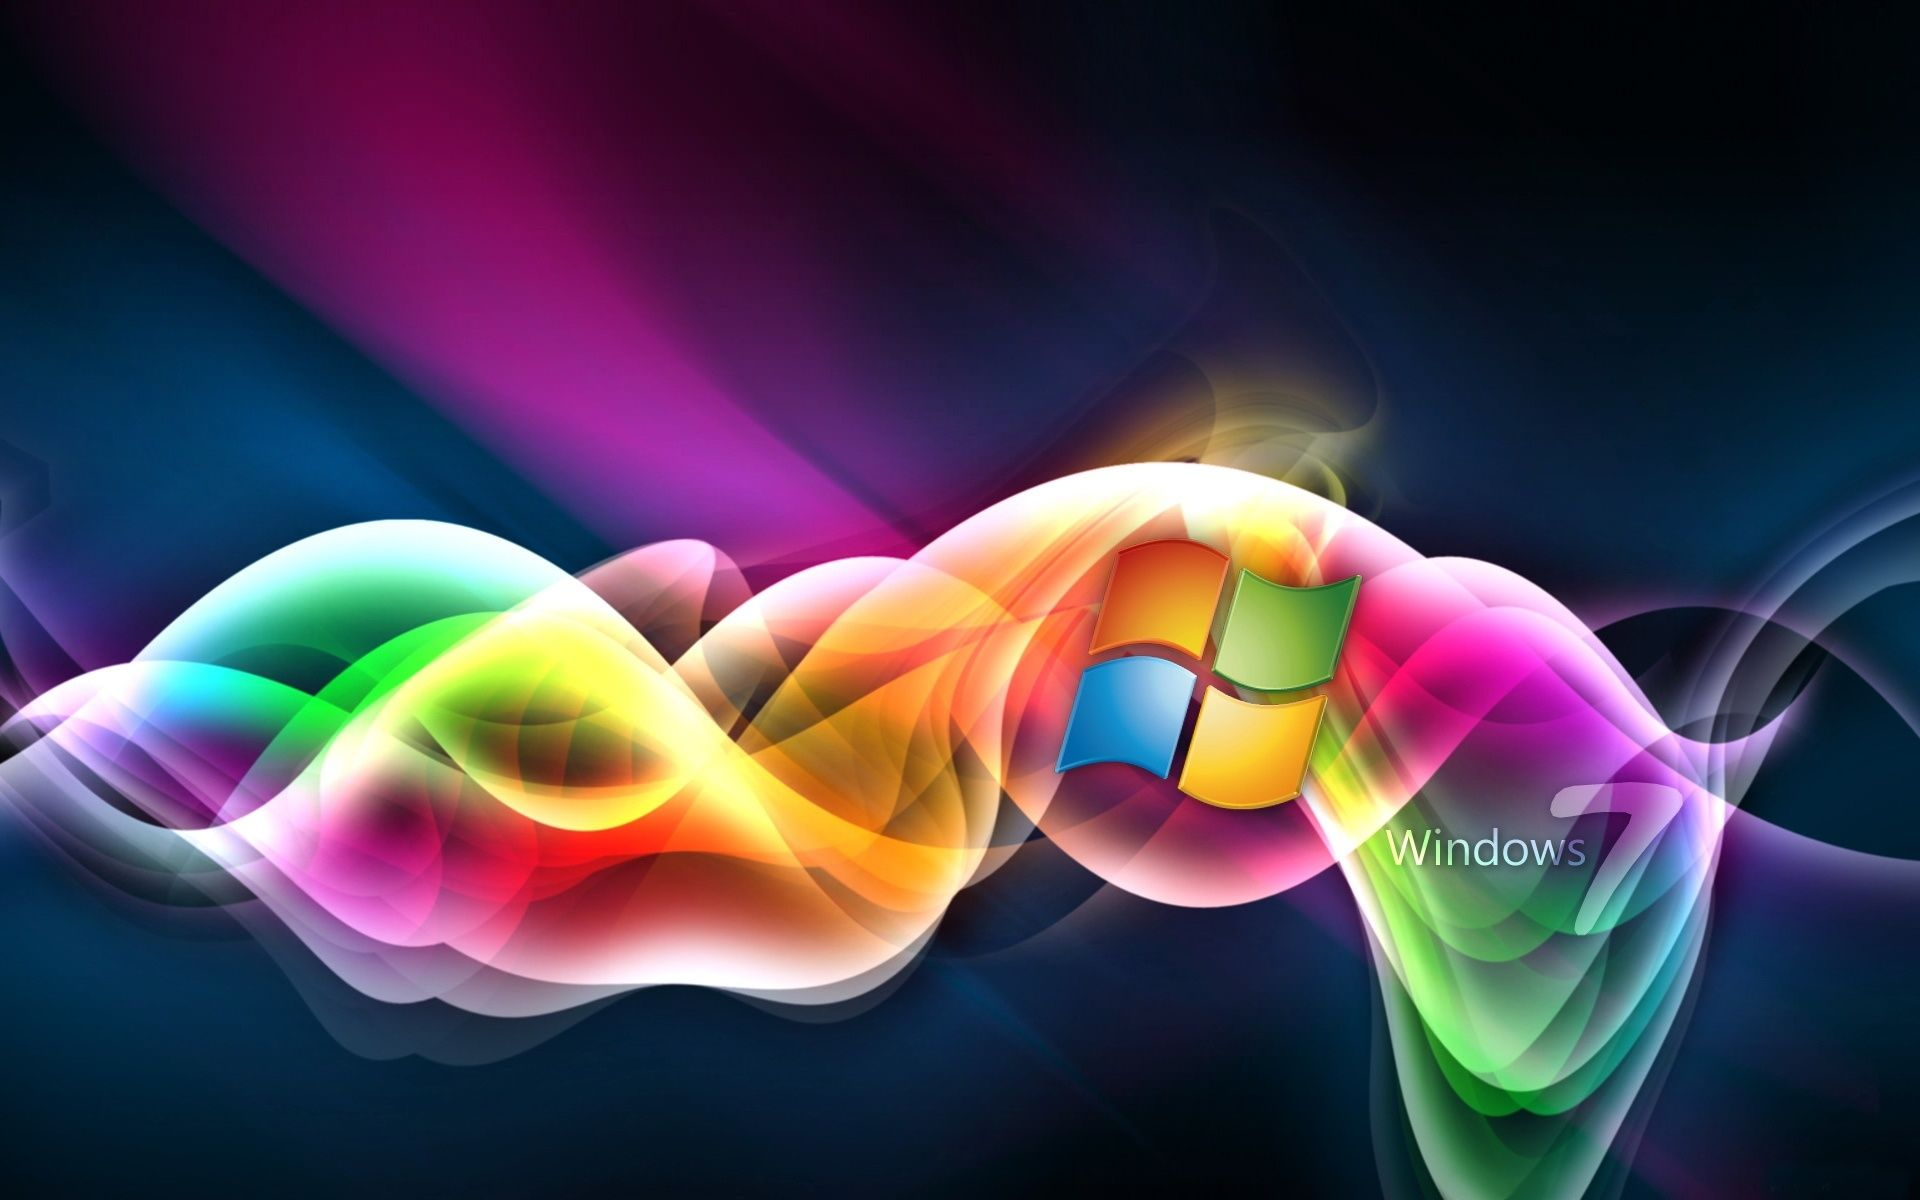 3d animated wallpaper for windows 7 | hd-wallpapers-windows